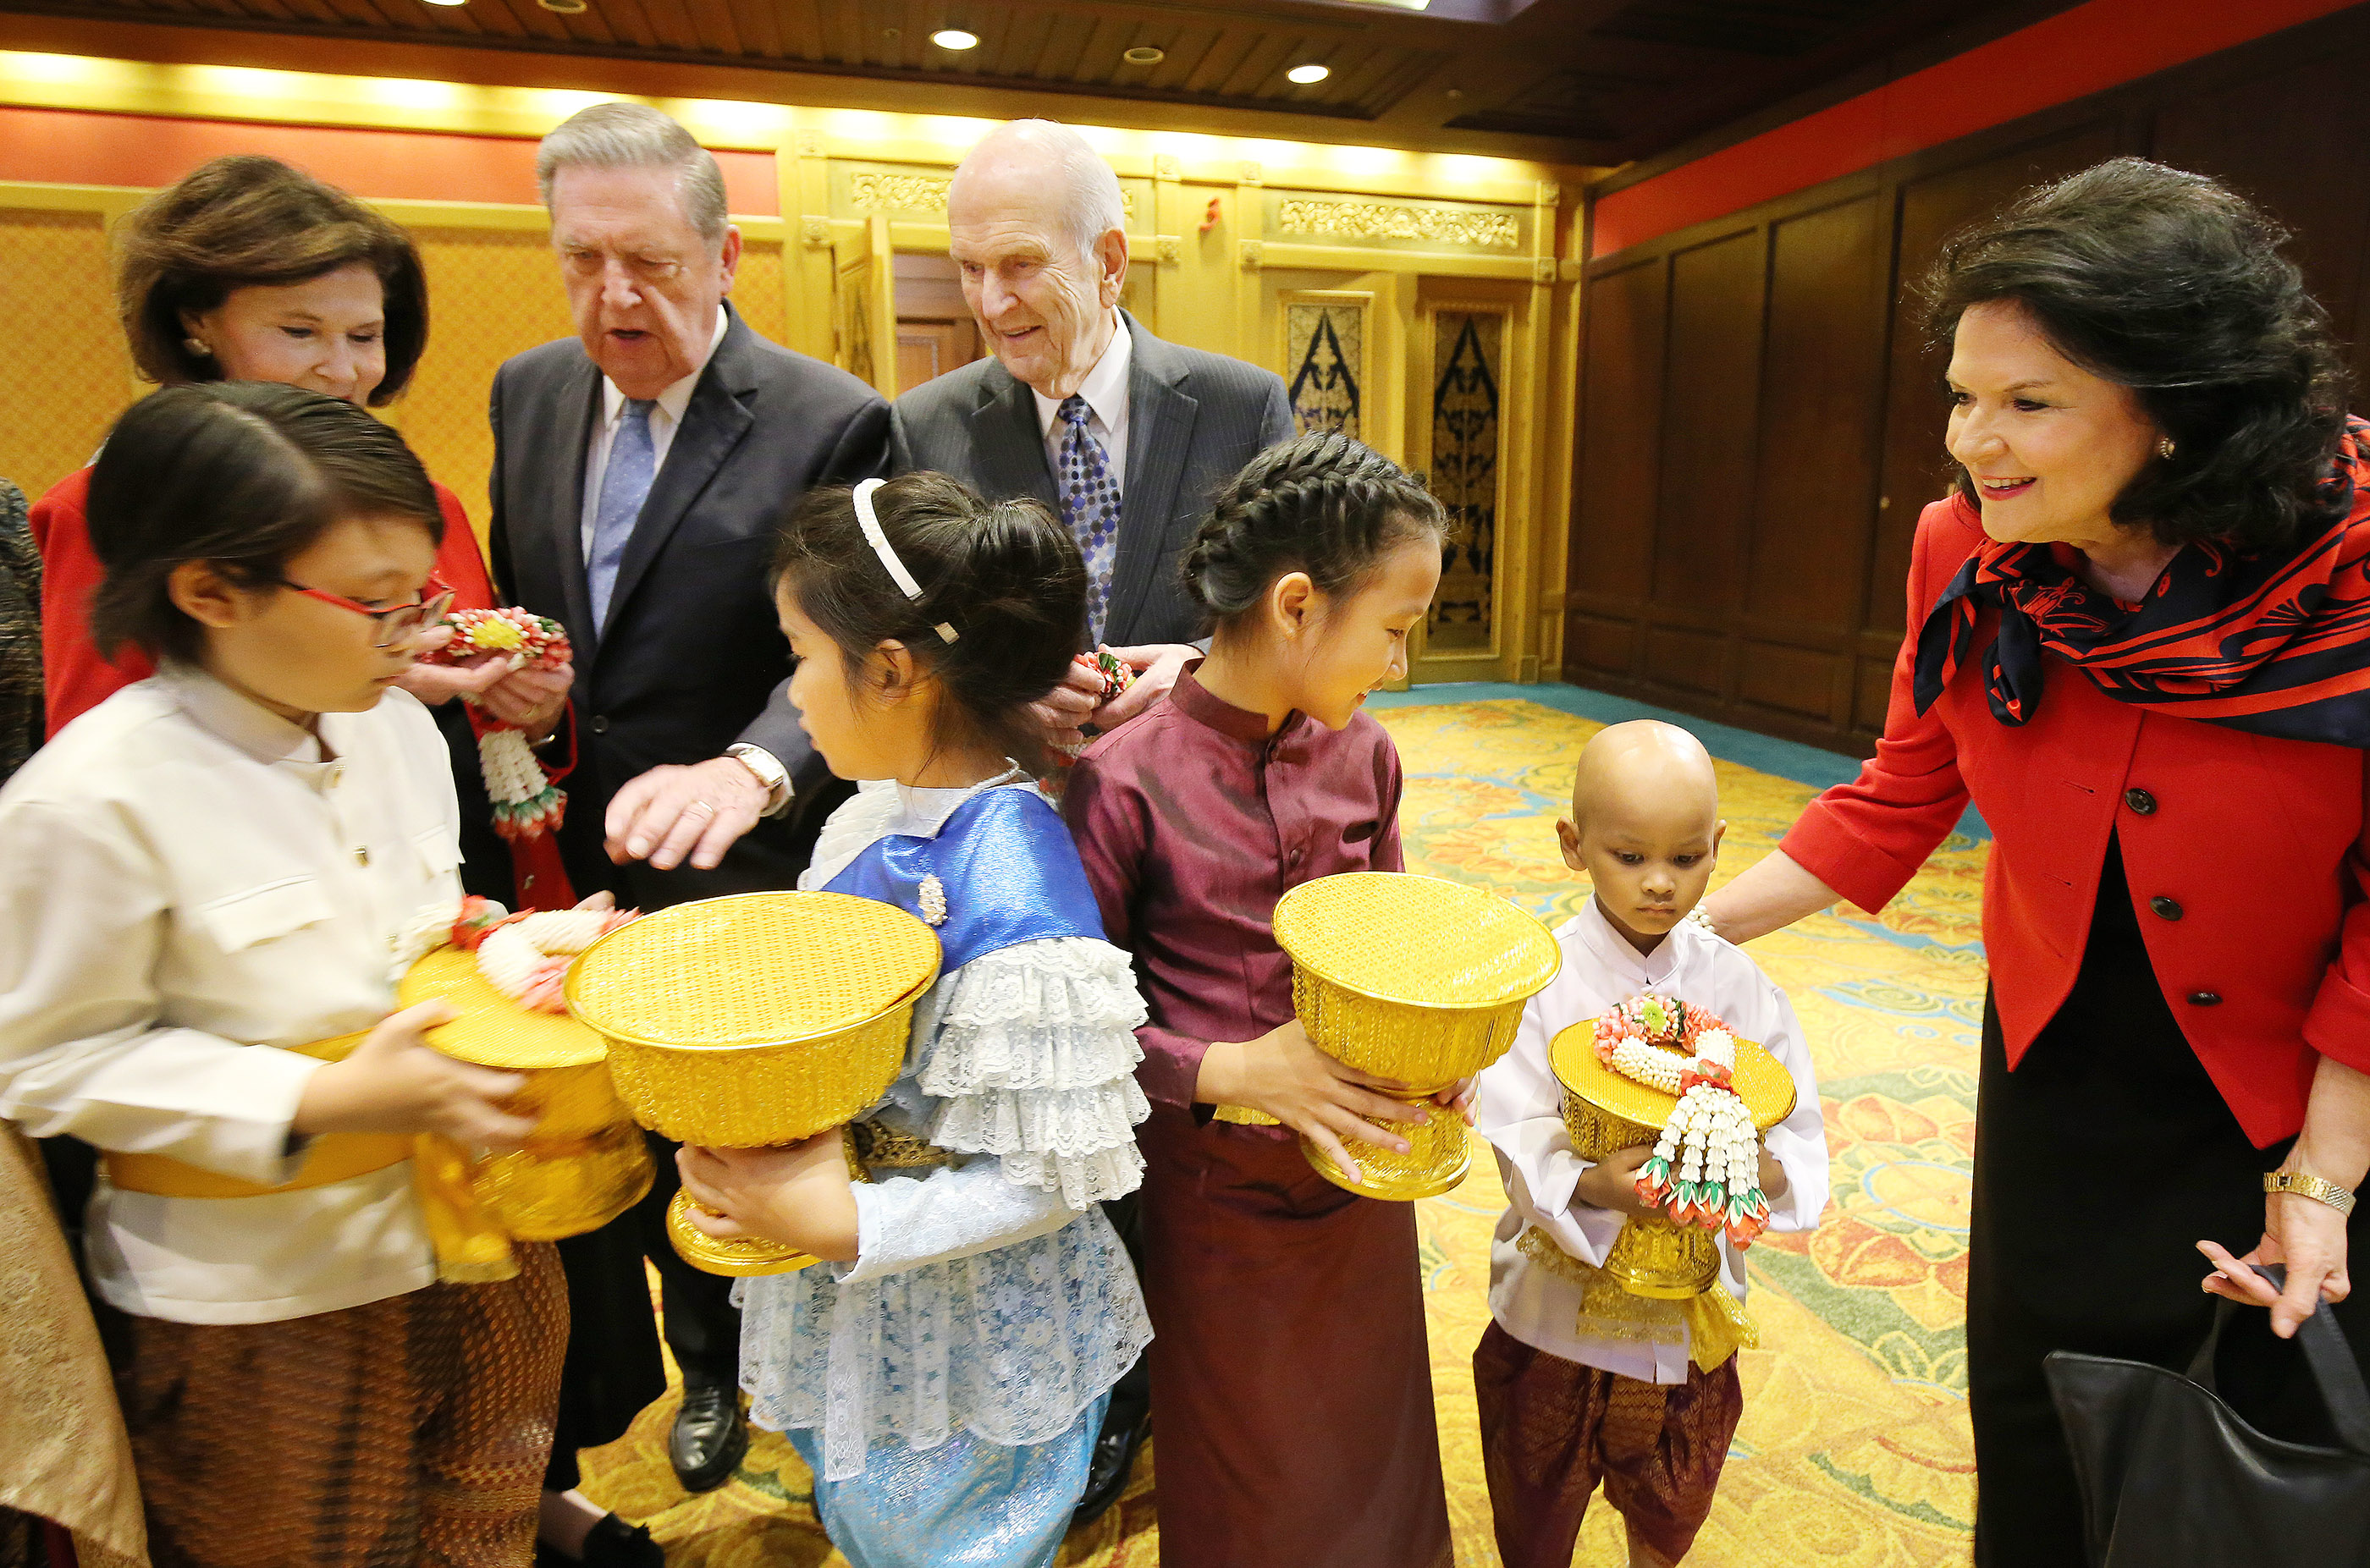 President Russell M. Nelson and his wife, Sister Wendy Watson Nelson, and Elder Jeffrey R. Holland, Quorum of the Twelve Apostles, and Sister Patricia Holland are greeted and given flowers by Primary children in Bangkok, Thailand, on Friday, April 20, 2018.